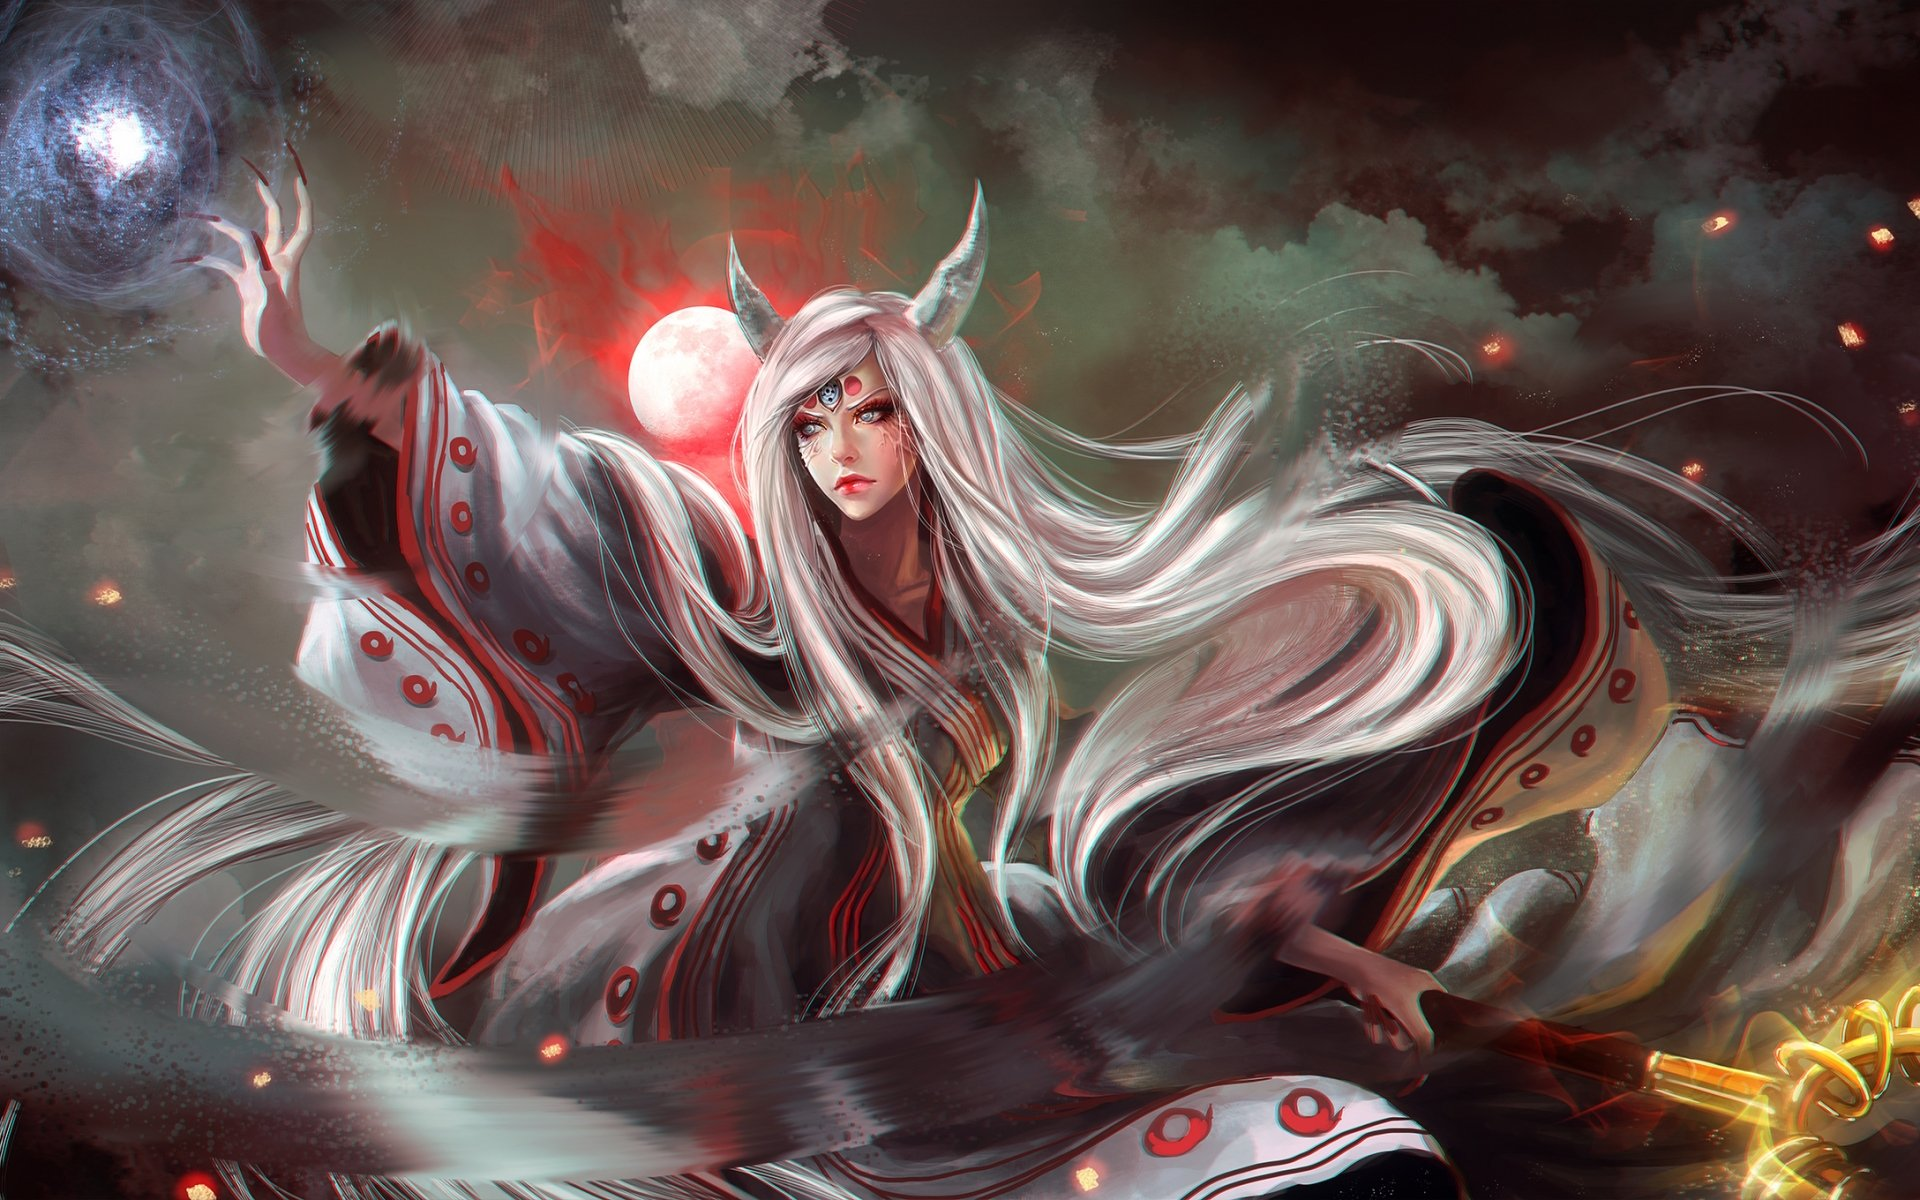 Anime - Naruto  Girl Kaguya Ōtsutsuki Woman Horns Moon Long Hair White Hair Blue Eyes Anime Wallpaper